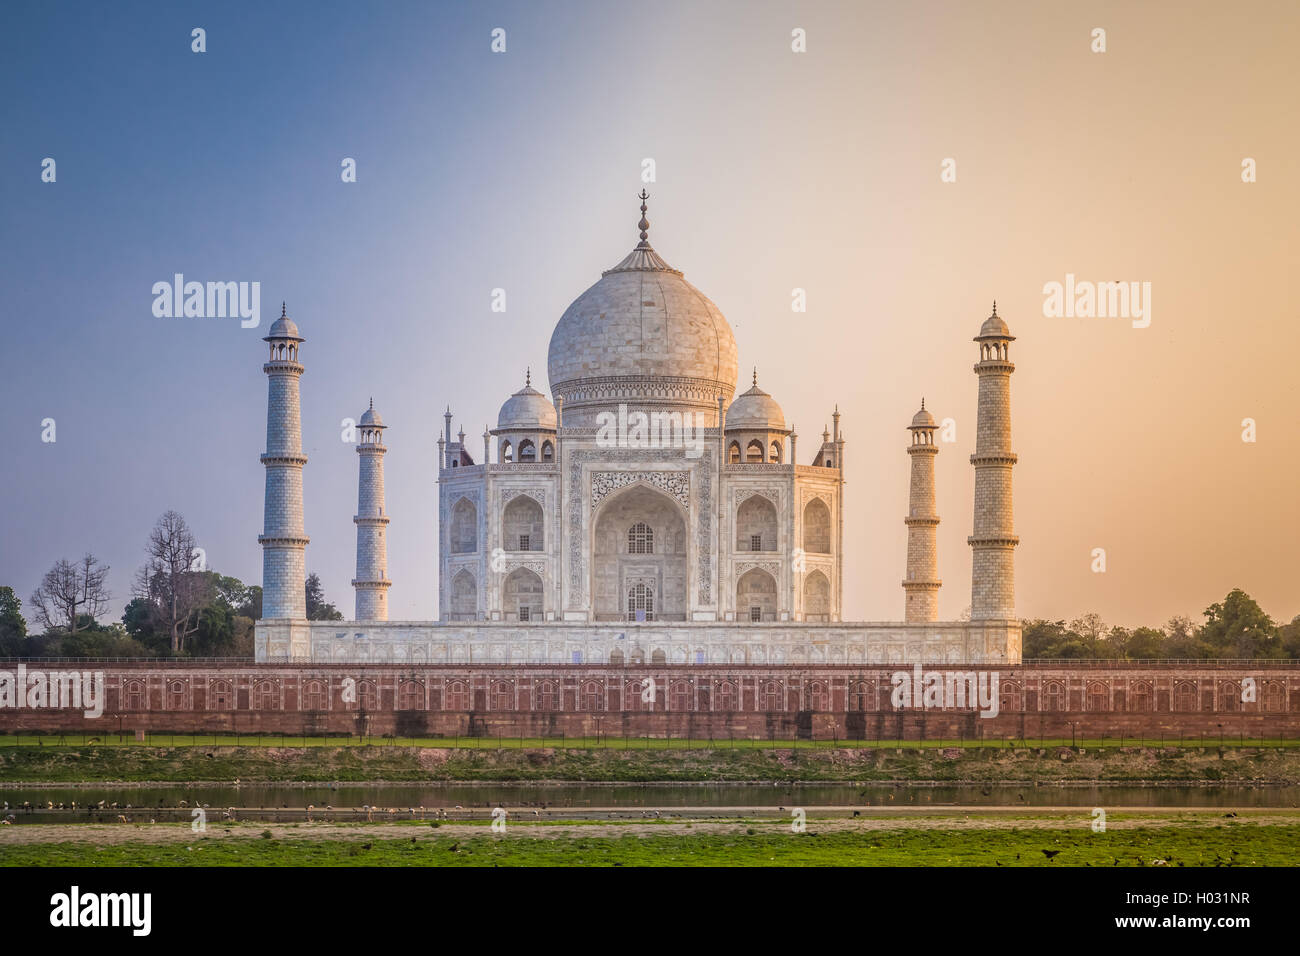 Taj Mahal from northern side across the Yamuna river at sunset. - Stock Image